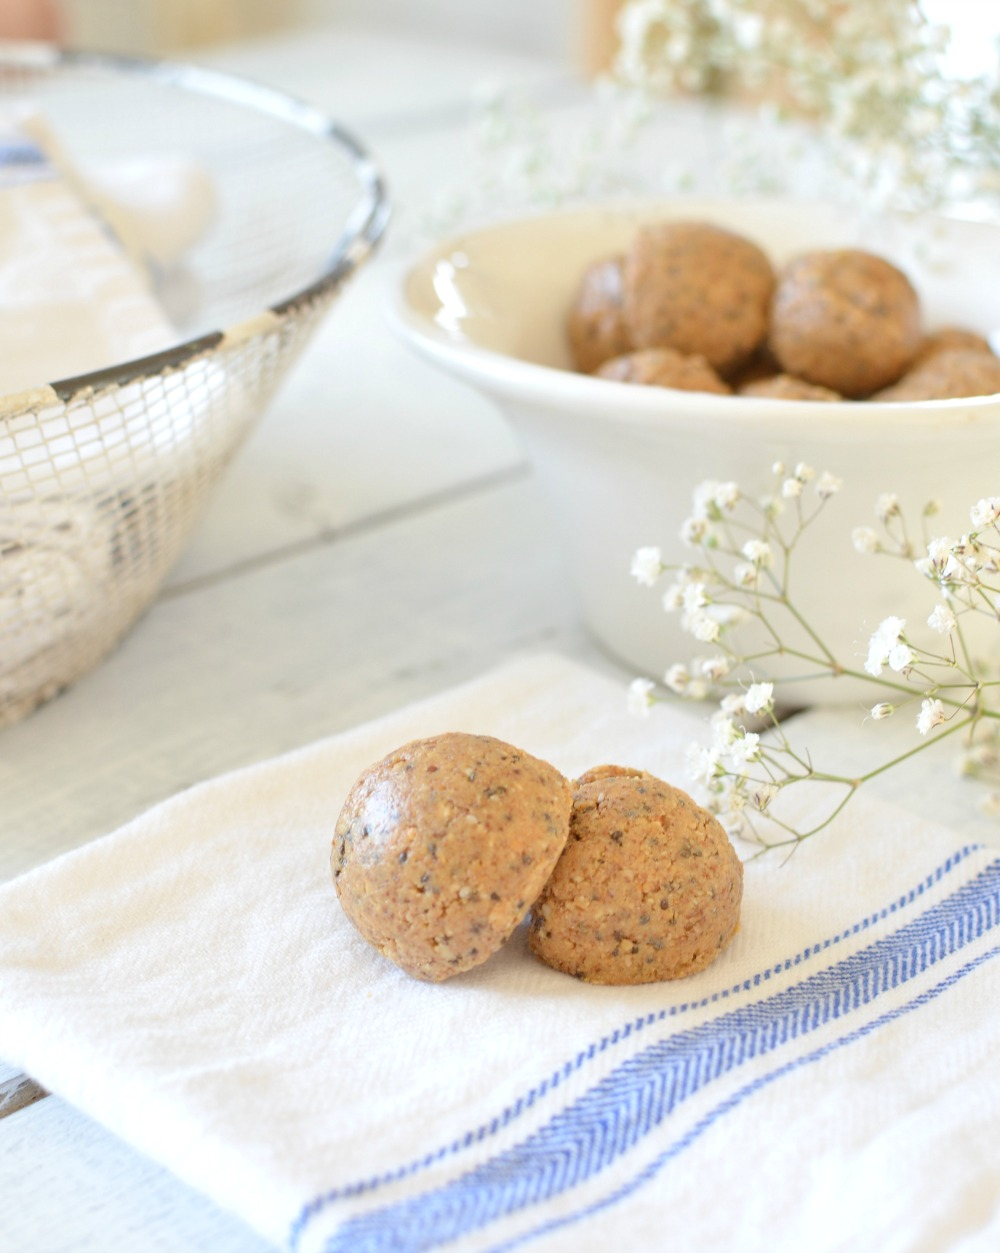 Chia Seed and honey no bake protein balls. These easy and quick protein balls are loaded are loaded with fiber, protein and Omega-3 fatty acids.